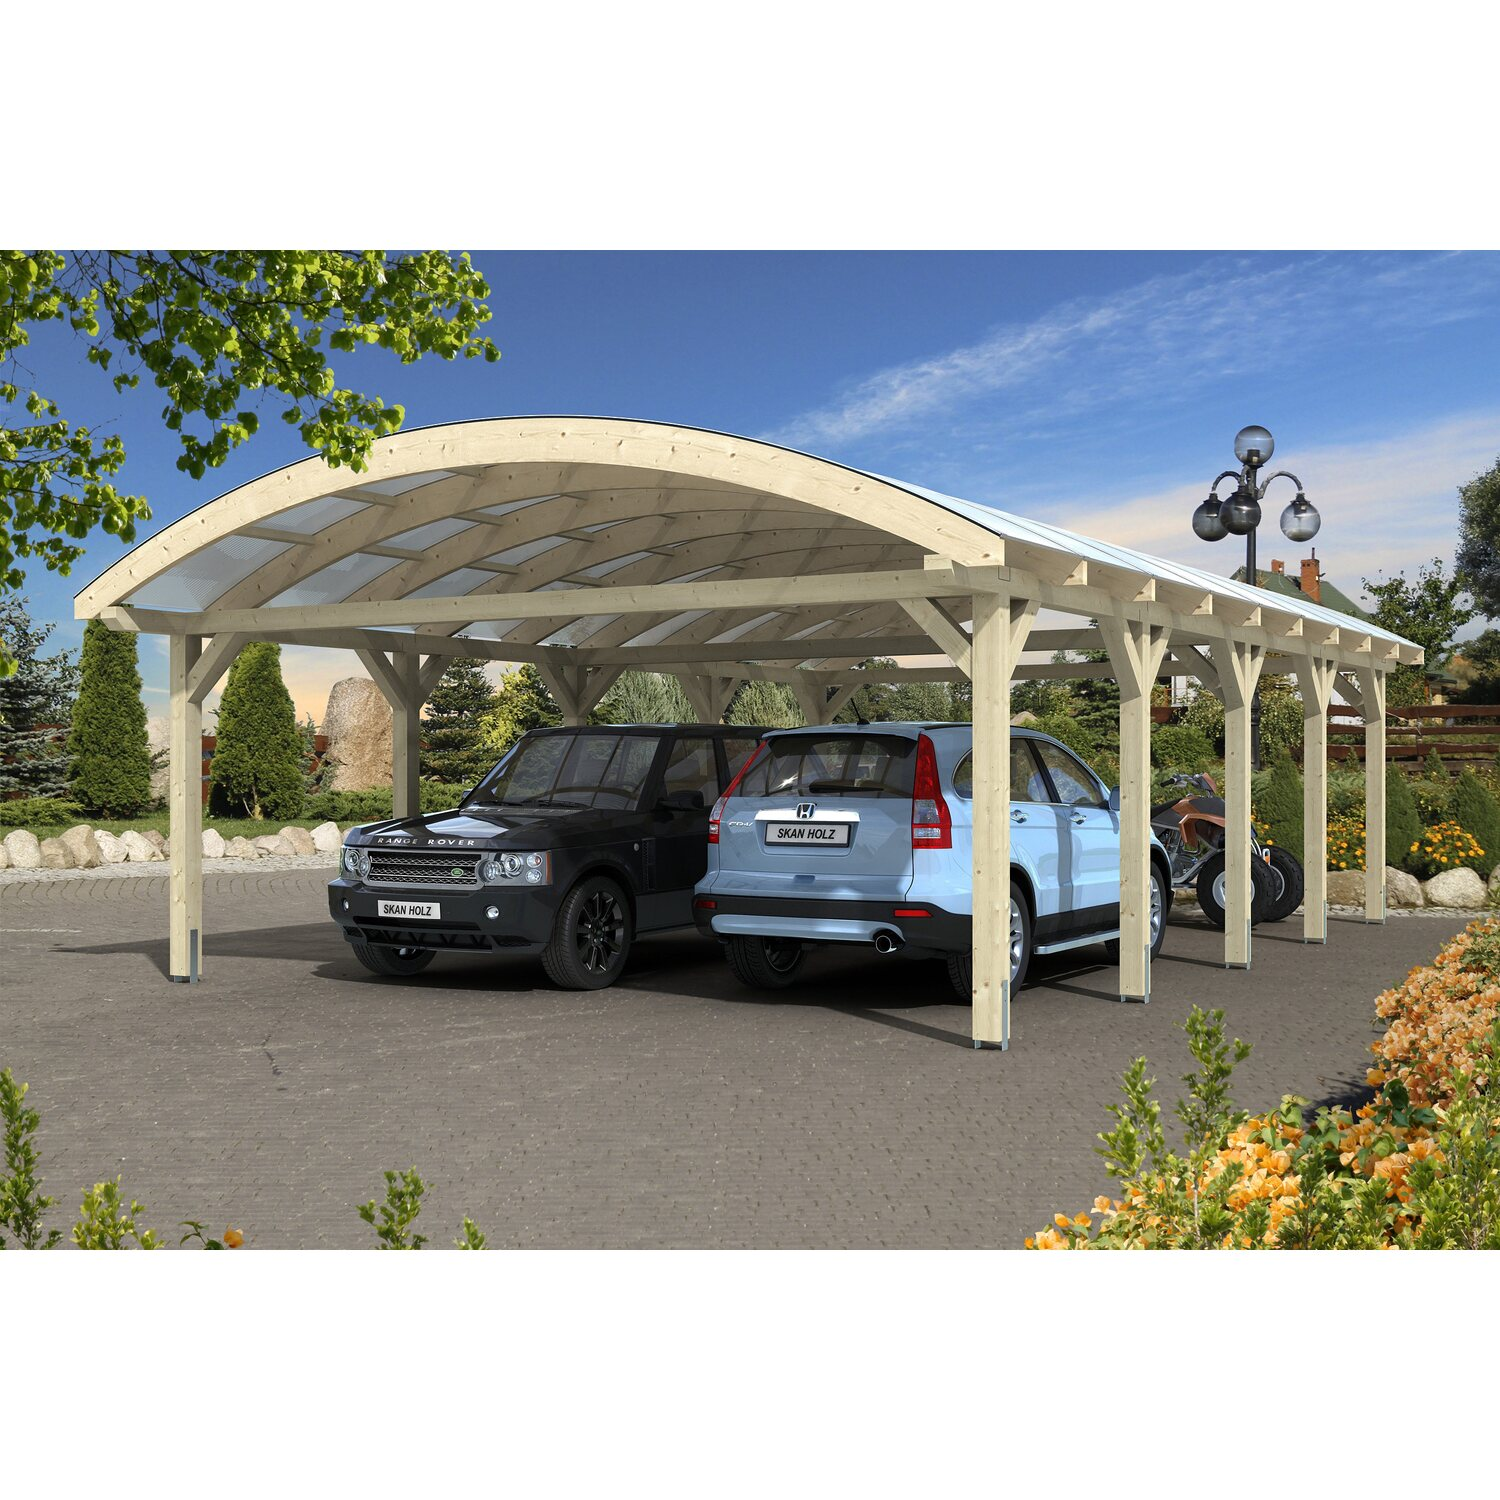 Billige Carports Kaufen. Excellent Rua With Billige Carports Kaufen ...